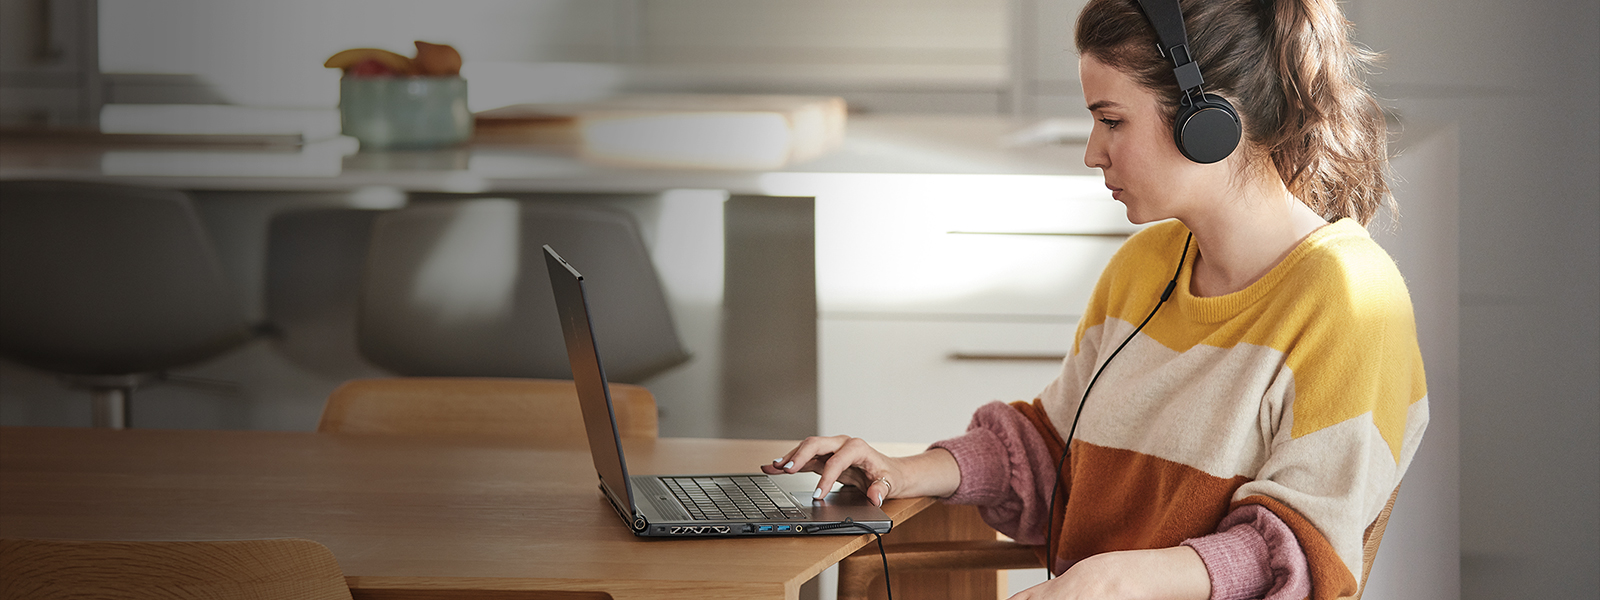 Female working from computer with headphones on.